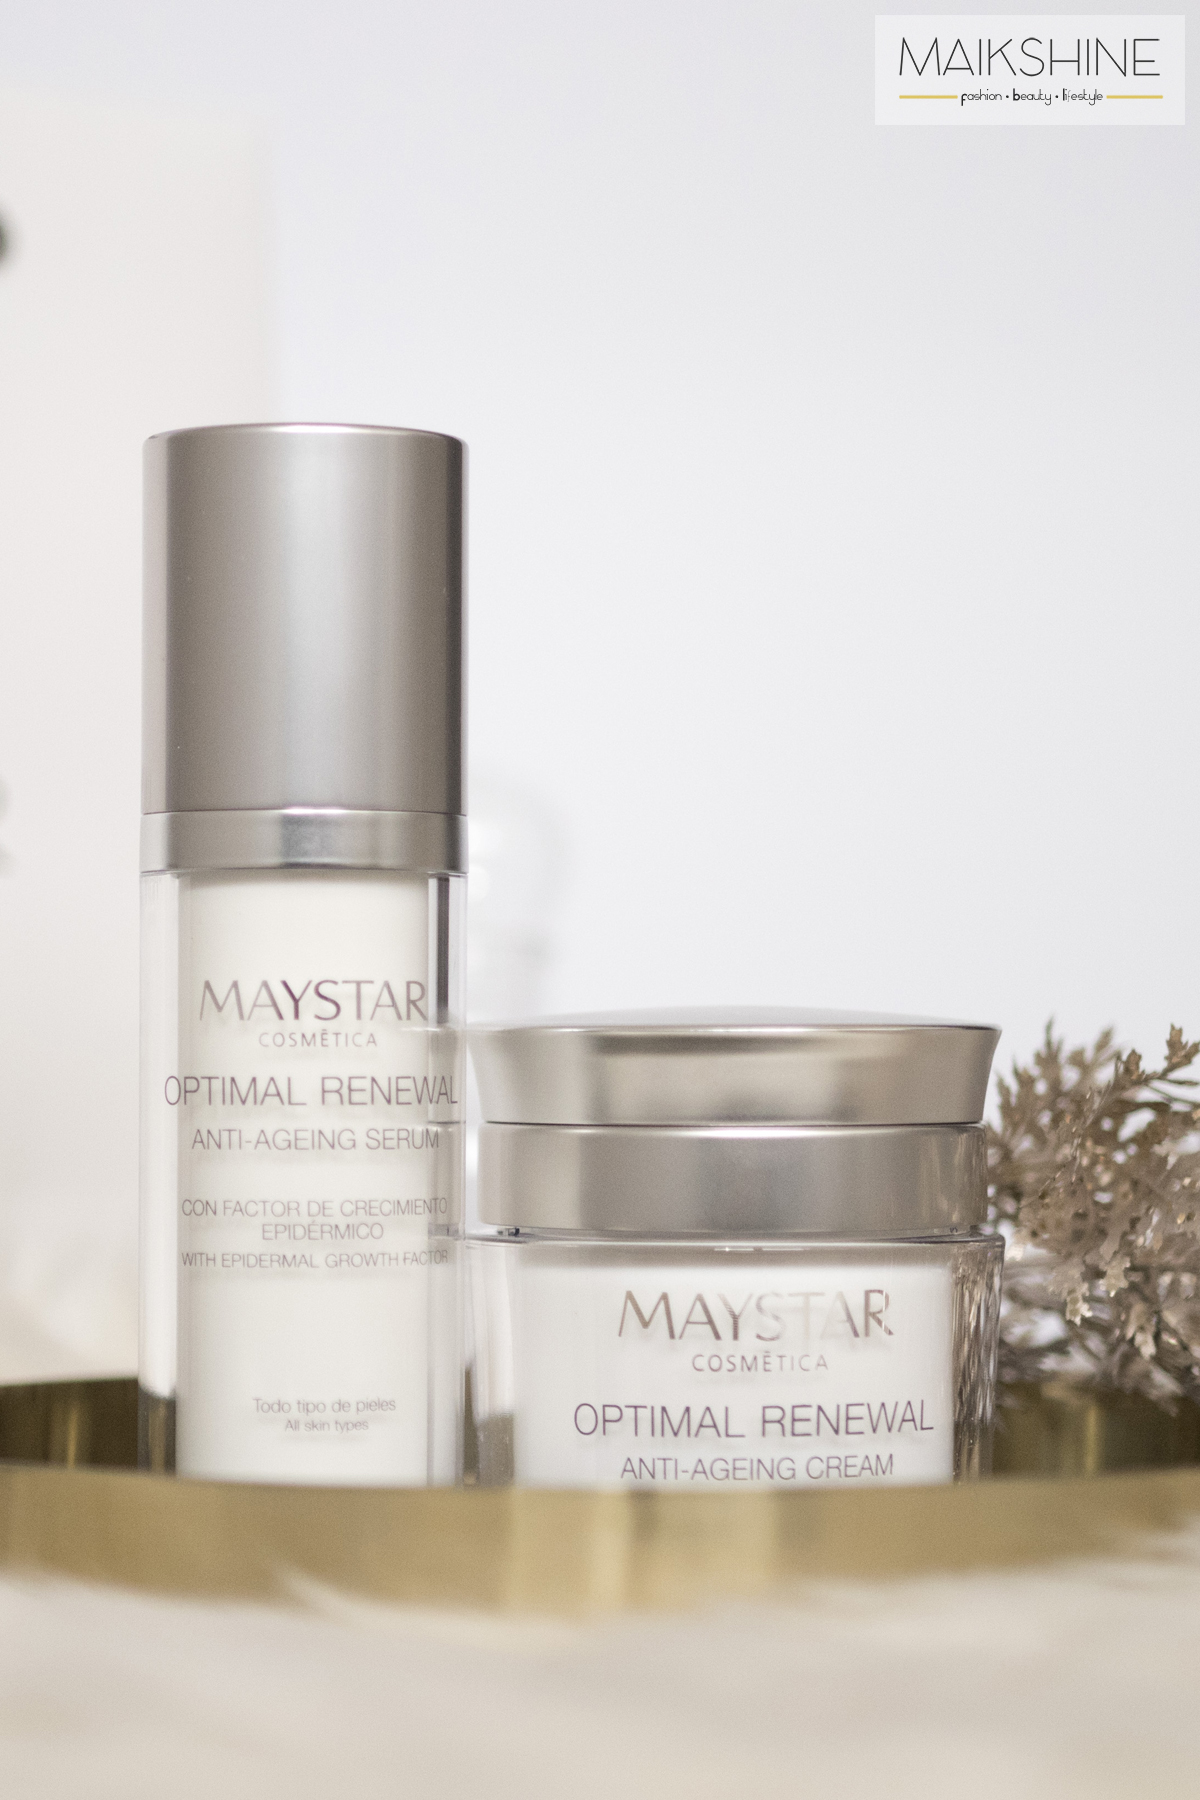 Optimal Renewal Maystar review